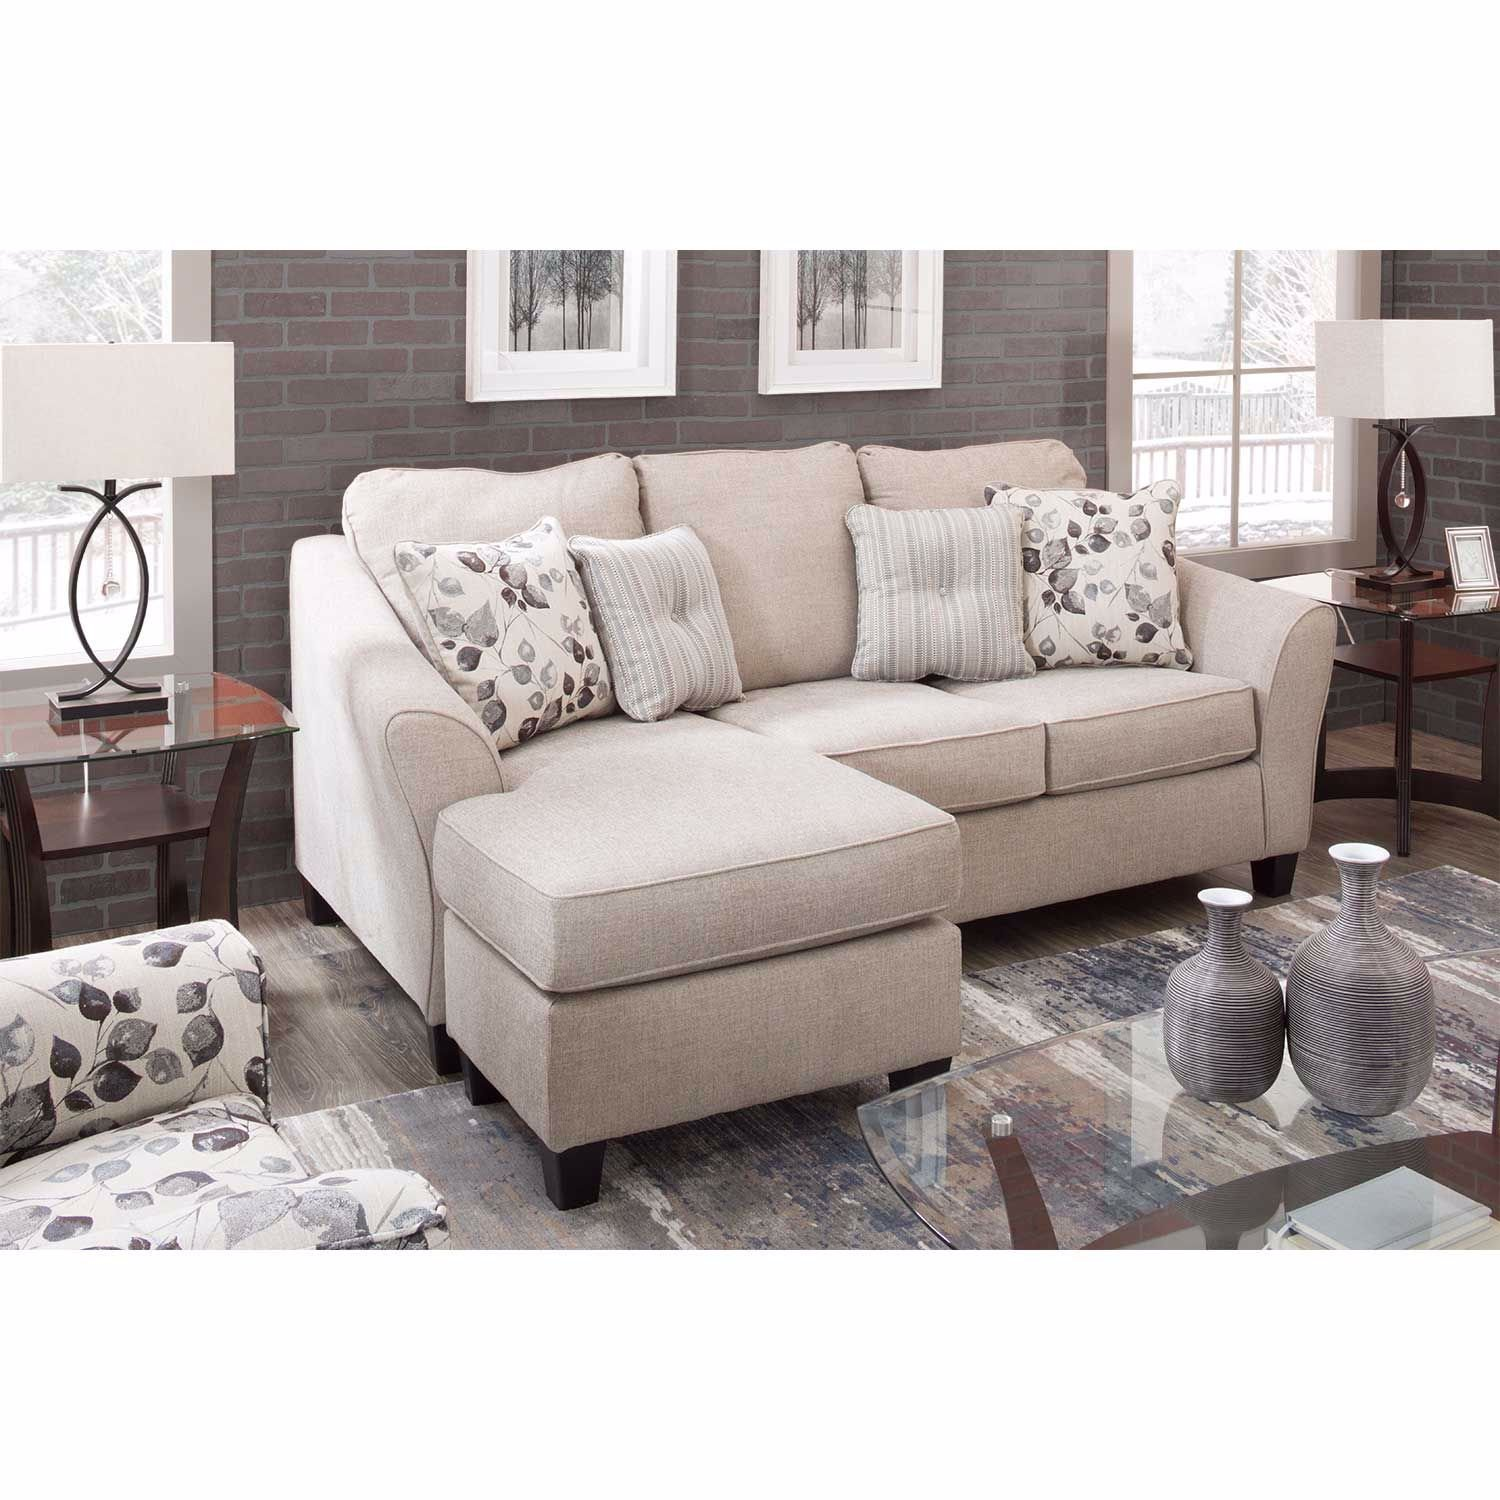 Abney Driftwood Reversible Queen Sleeper Sofa Chaise